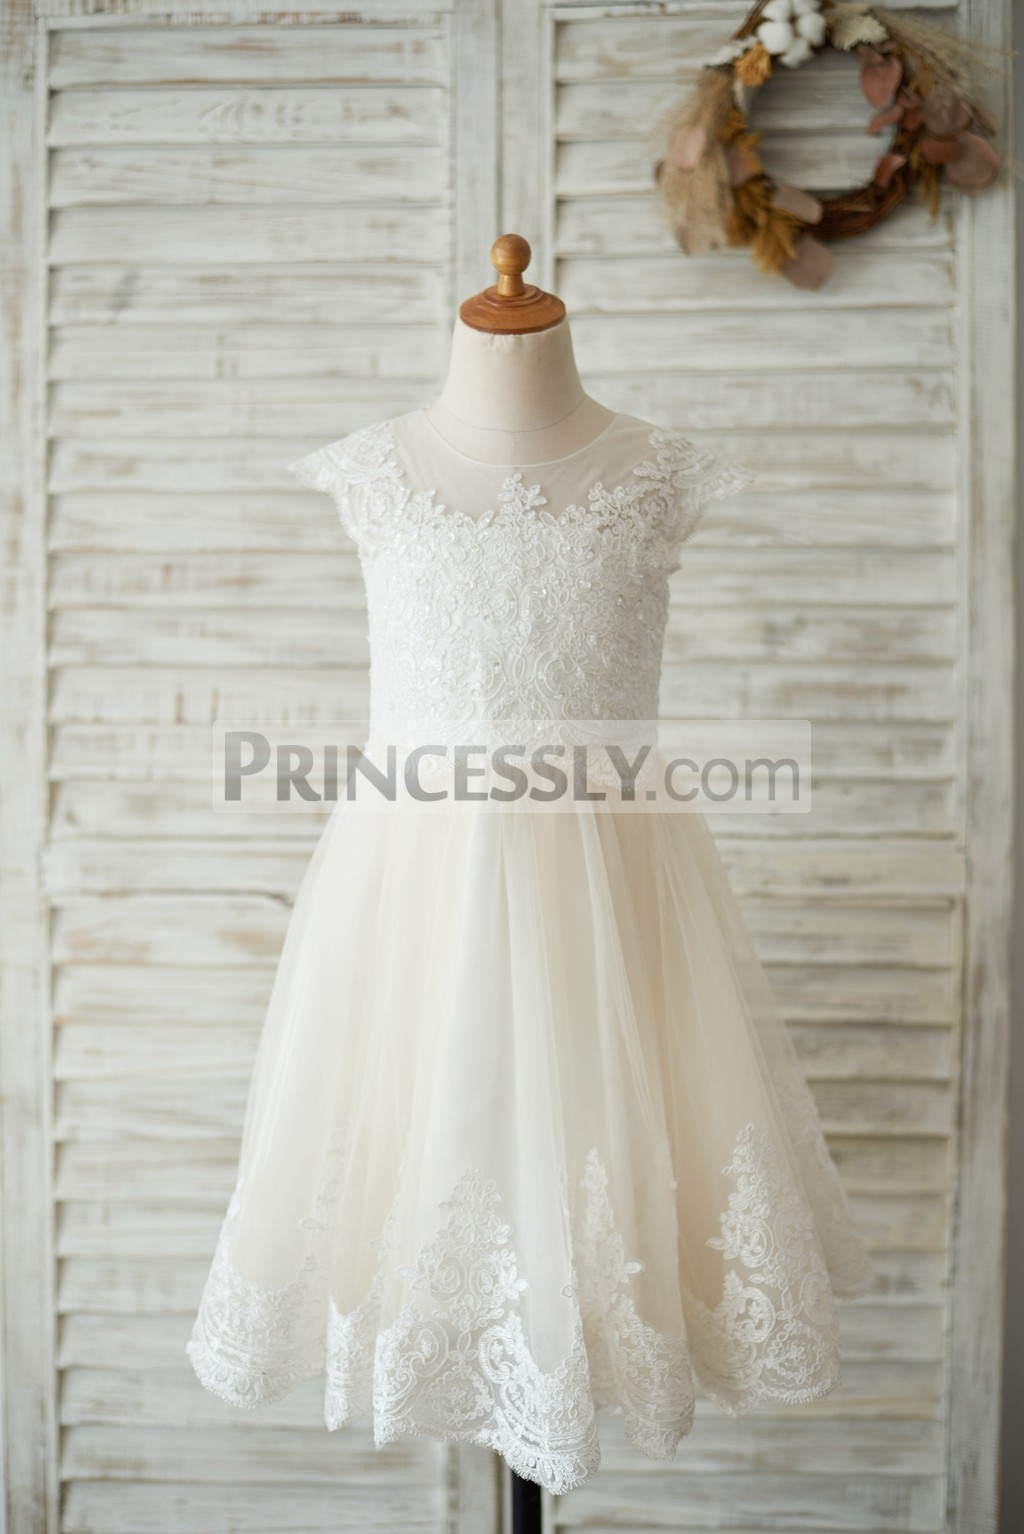 Beaded Ivory Lace Champagne Tulle Flower Girl Dress